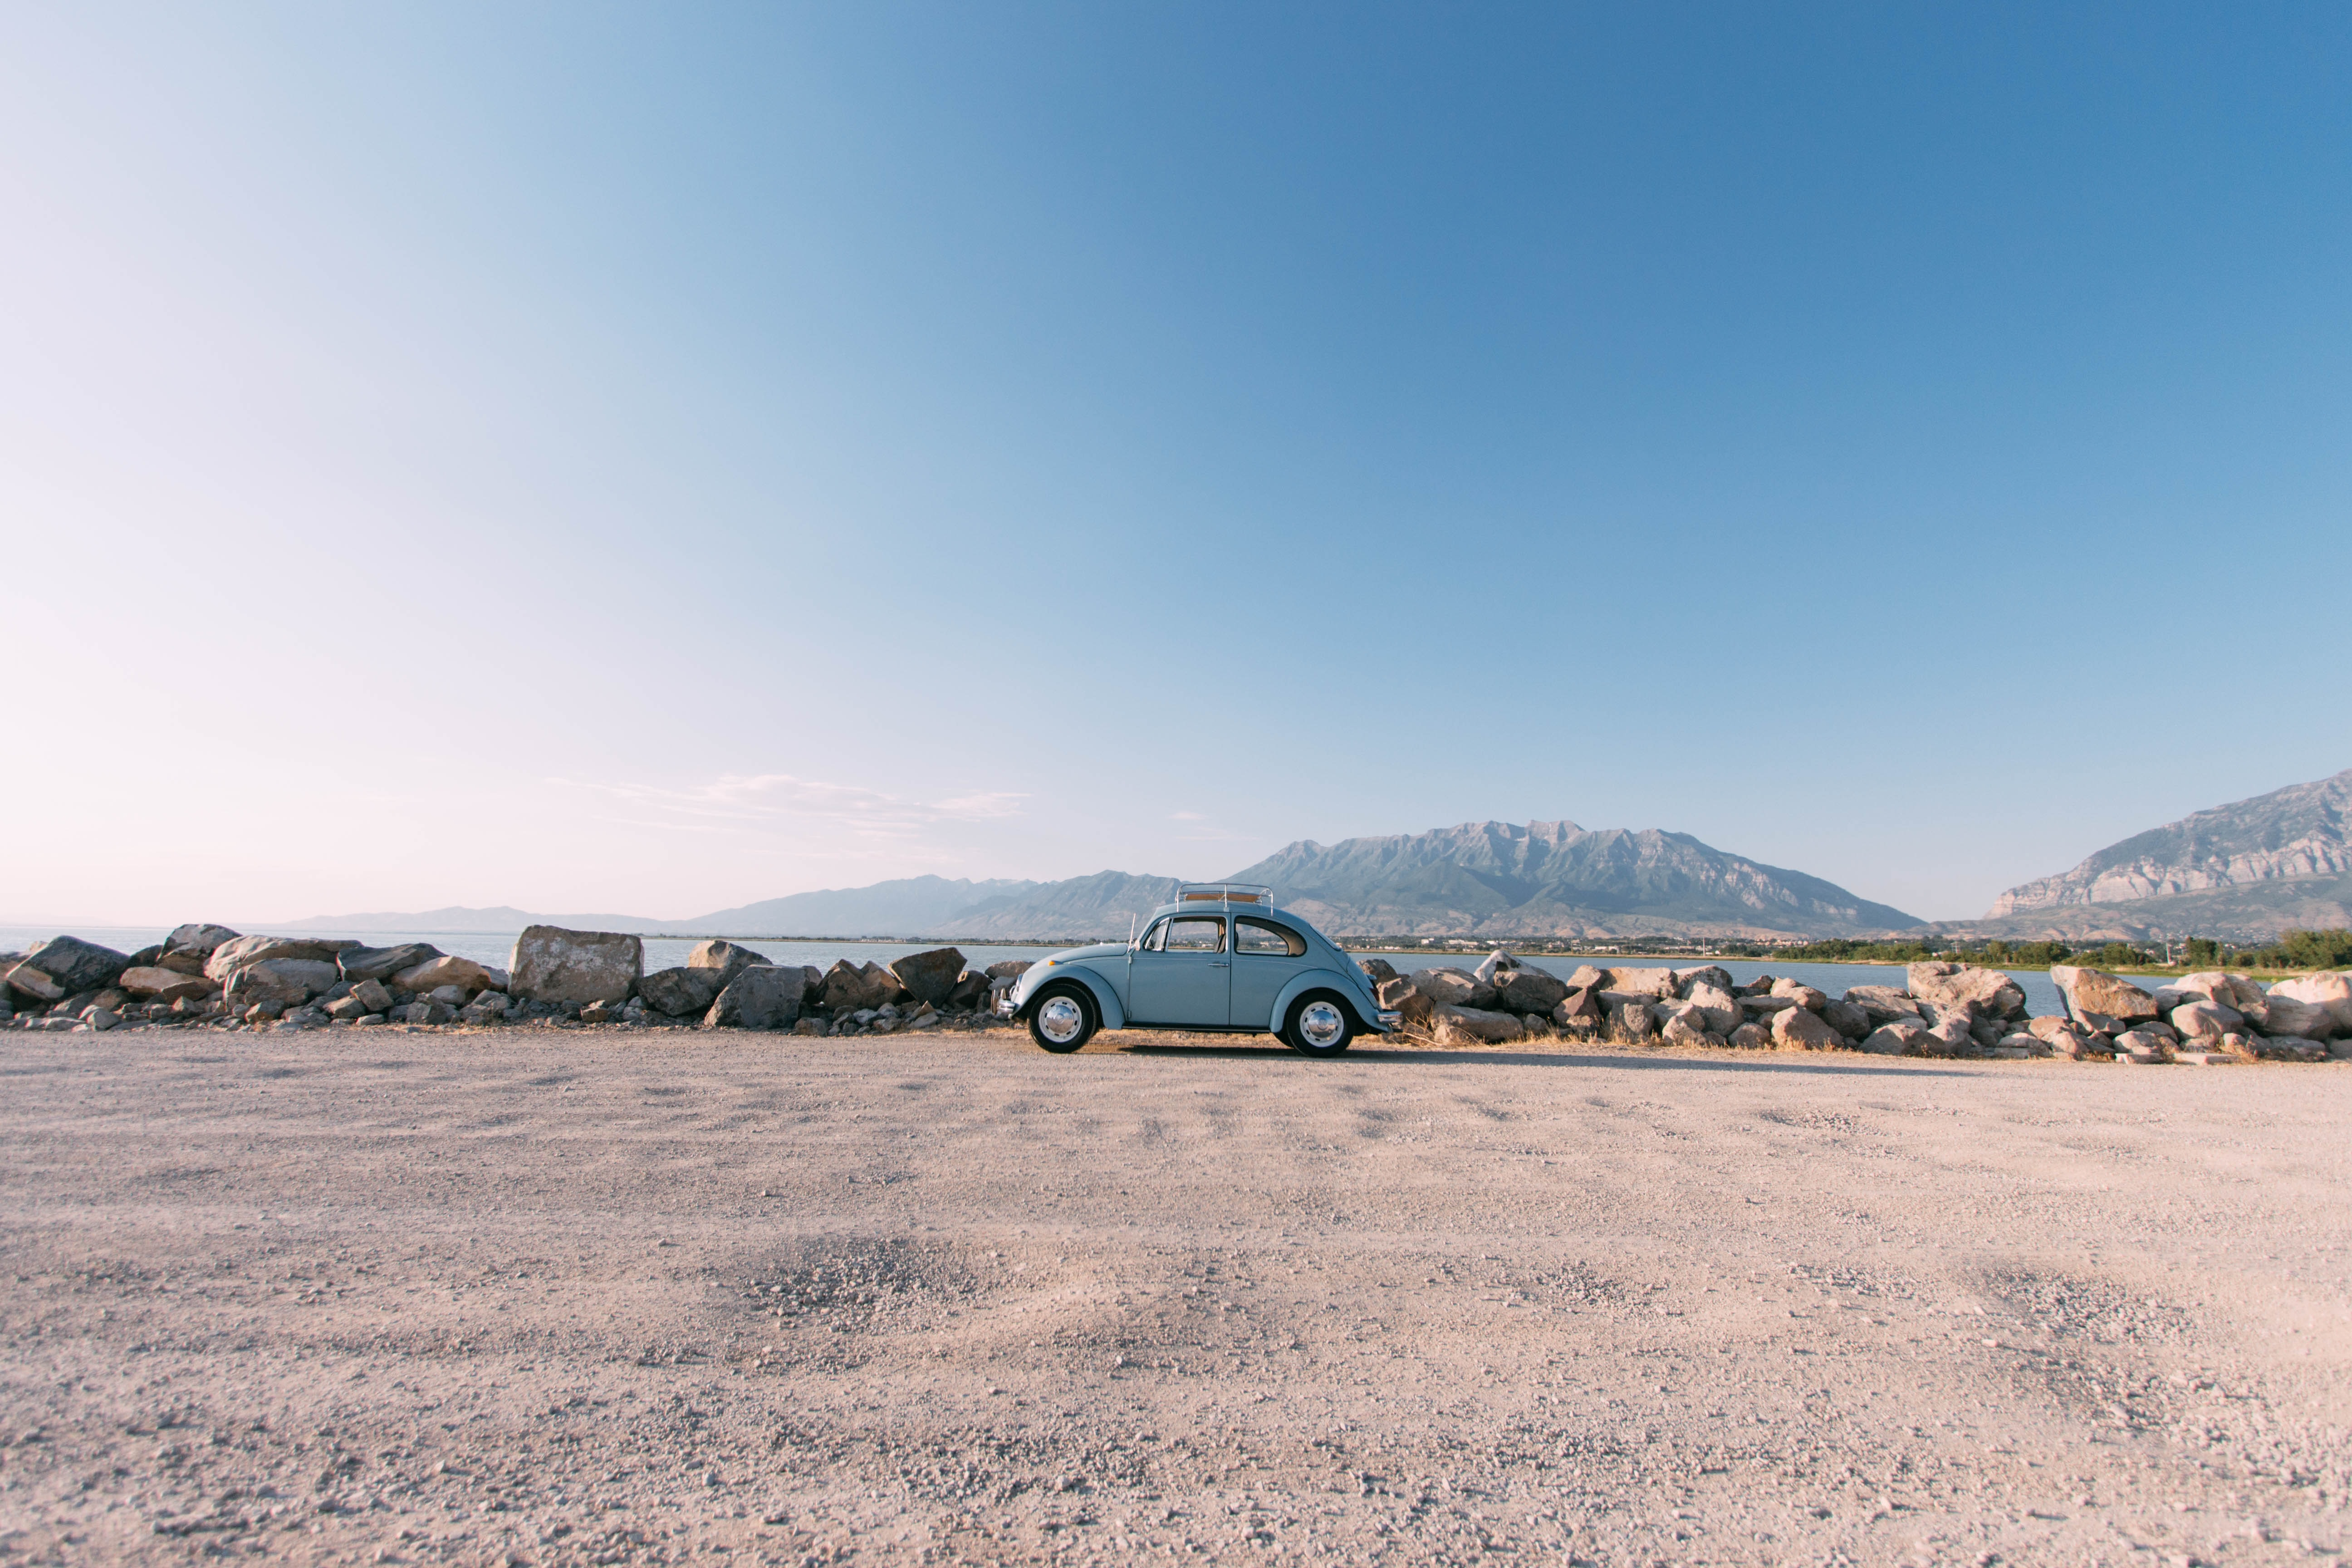 gray Volkswagen Beetle on dirt road near body of water and mountains at daytime